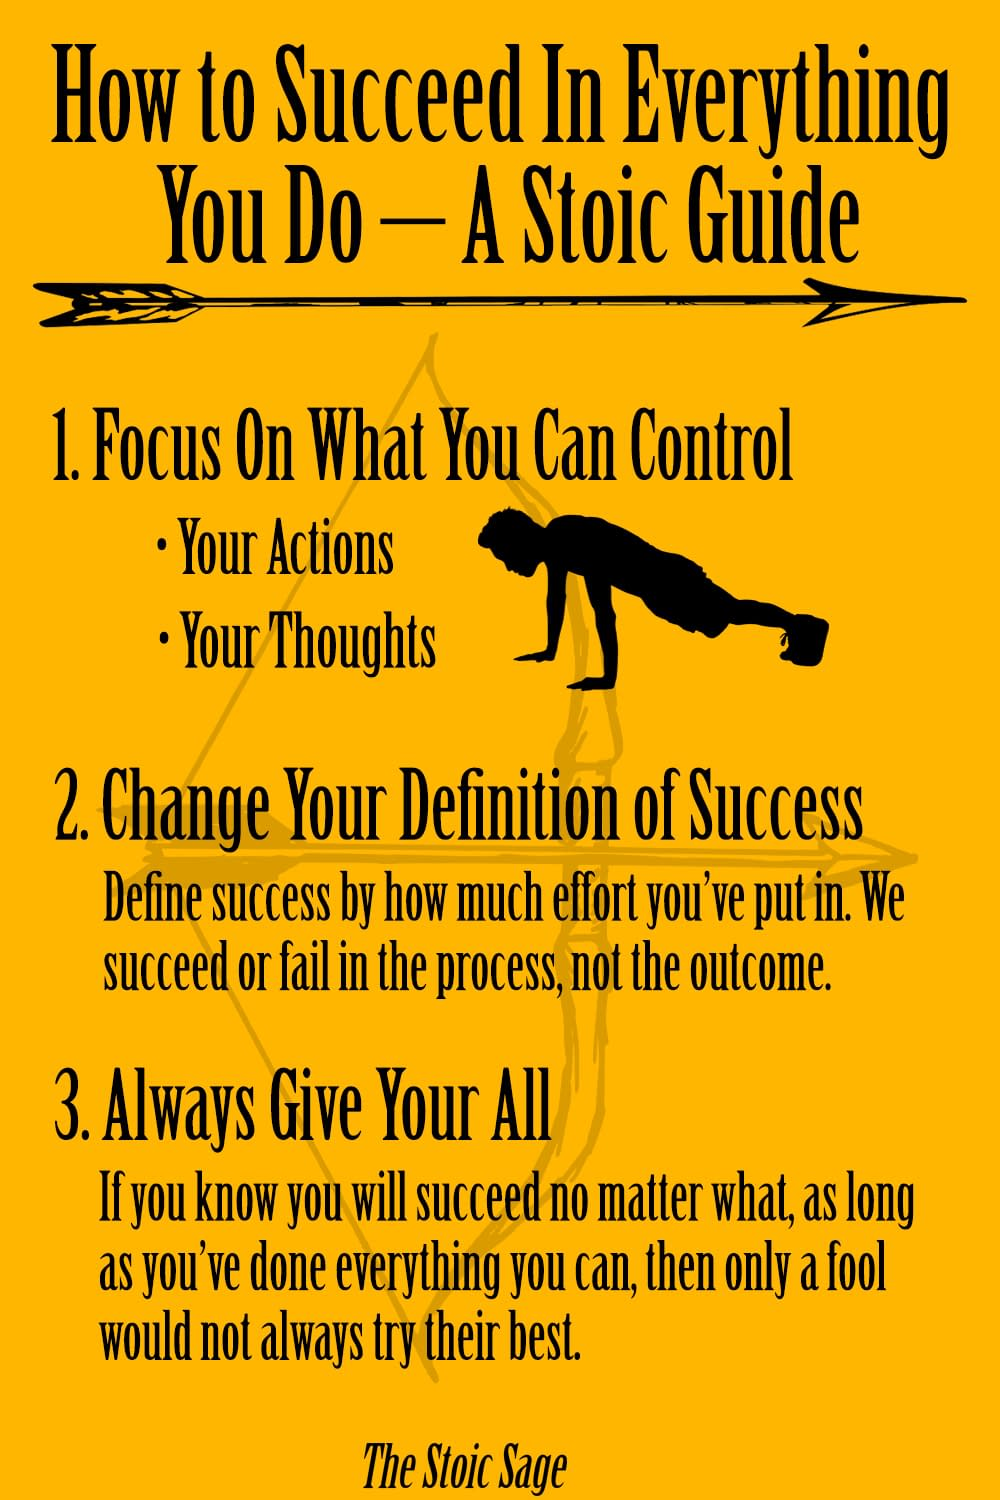 how to succeed in everything you do, a stoic guide